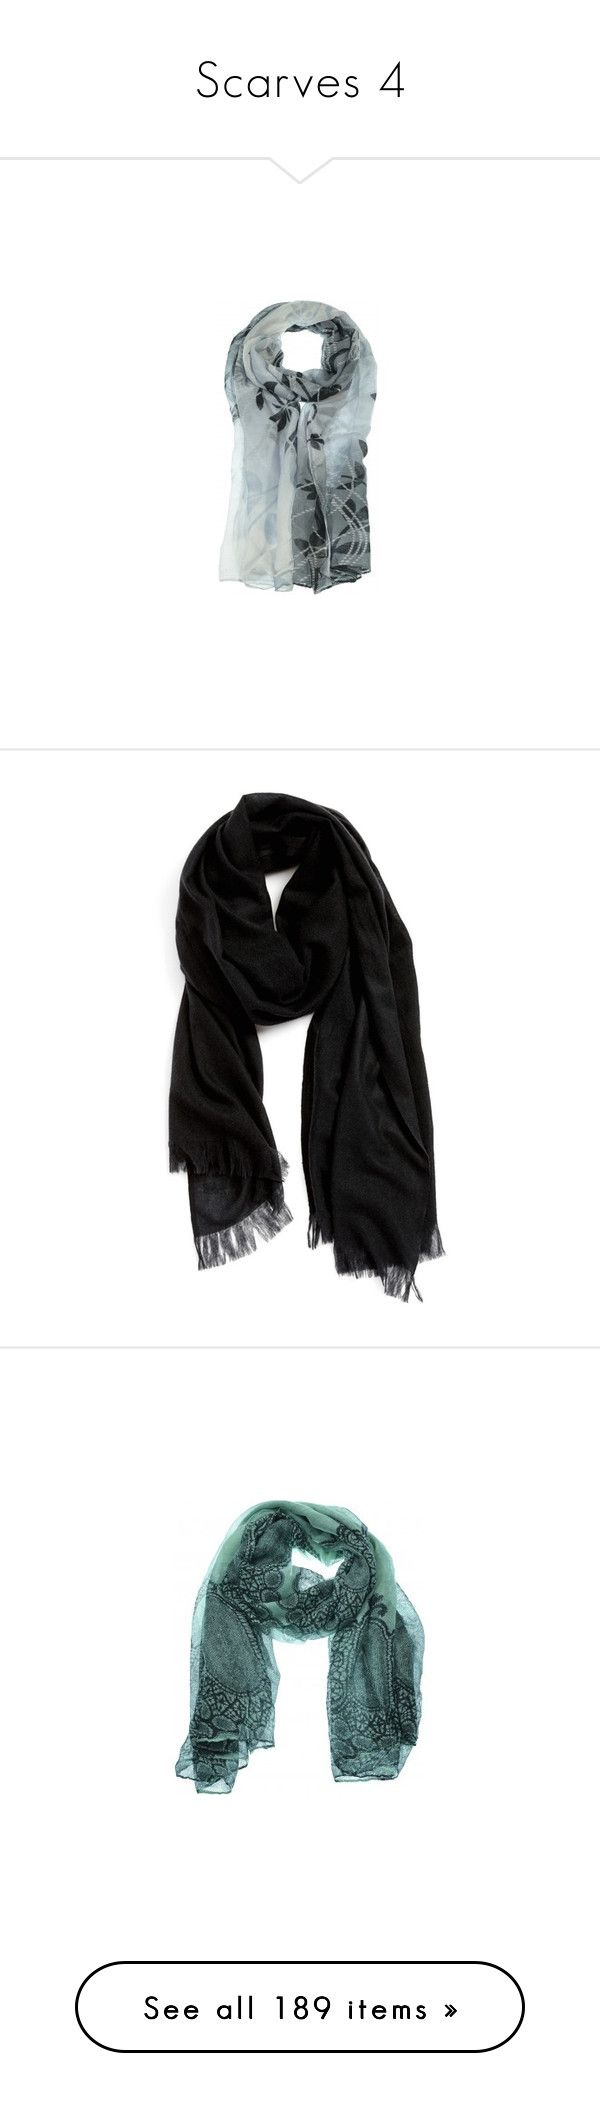 """Scarves 4"" by dmiddleton ❤ liked on Polyvore featuring accessories, scarves, colorful scarves, wrap shawl, long shawl, wrap scarves, multi colored scarves, black, fringe shawl and nordstrom scarves"